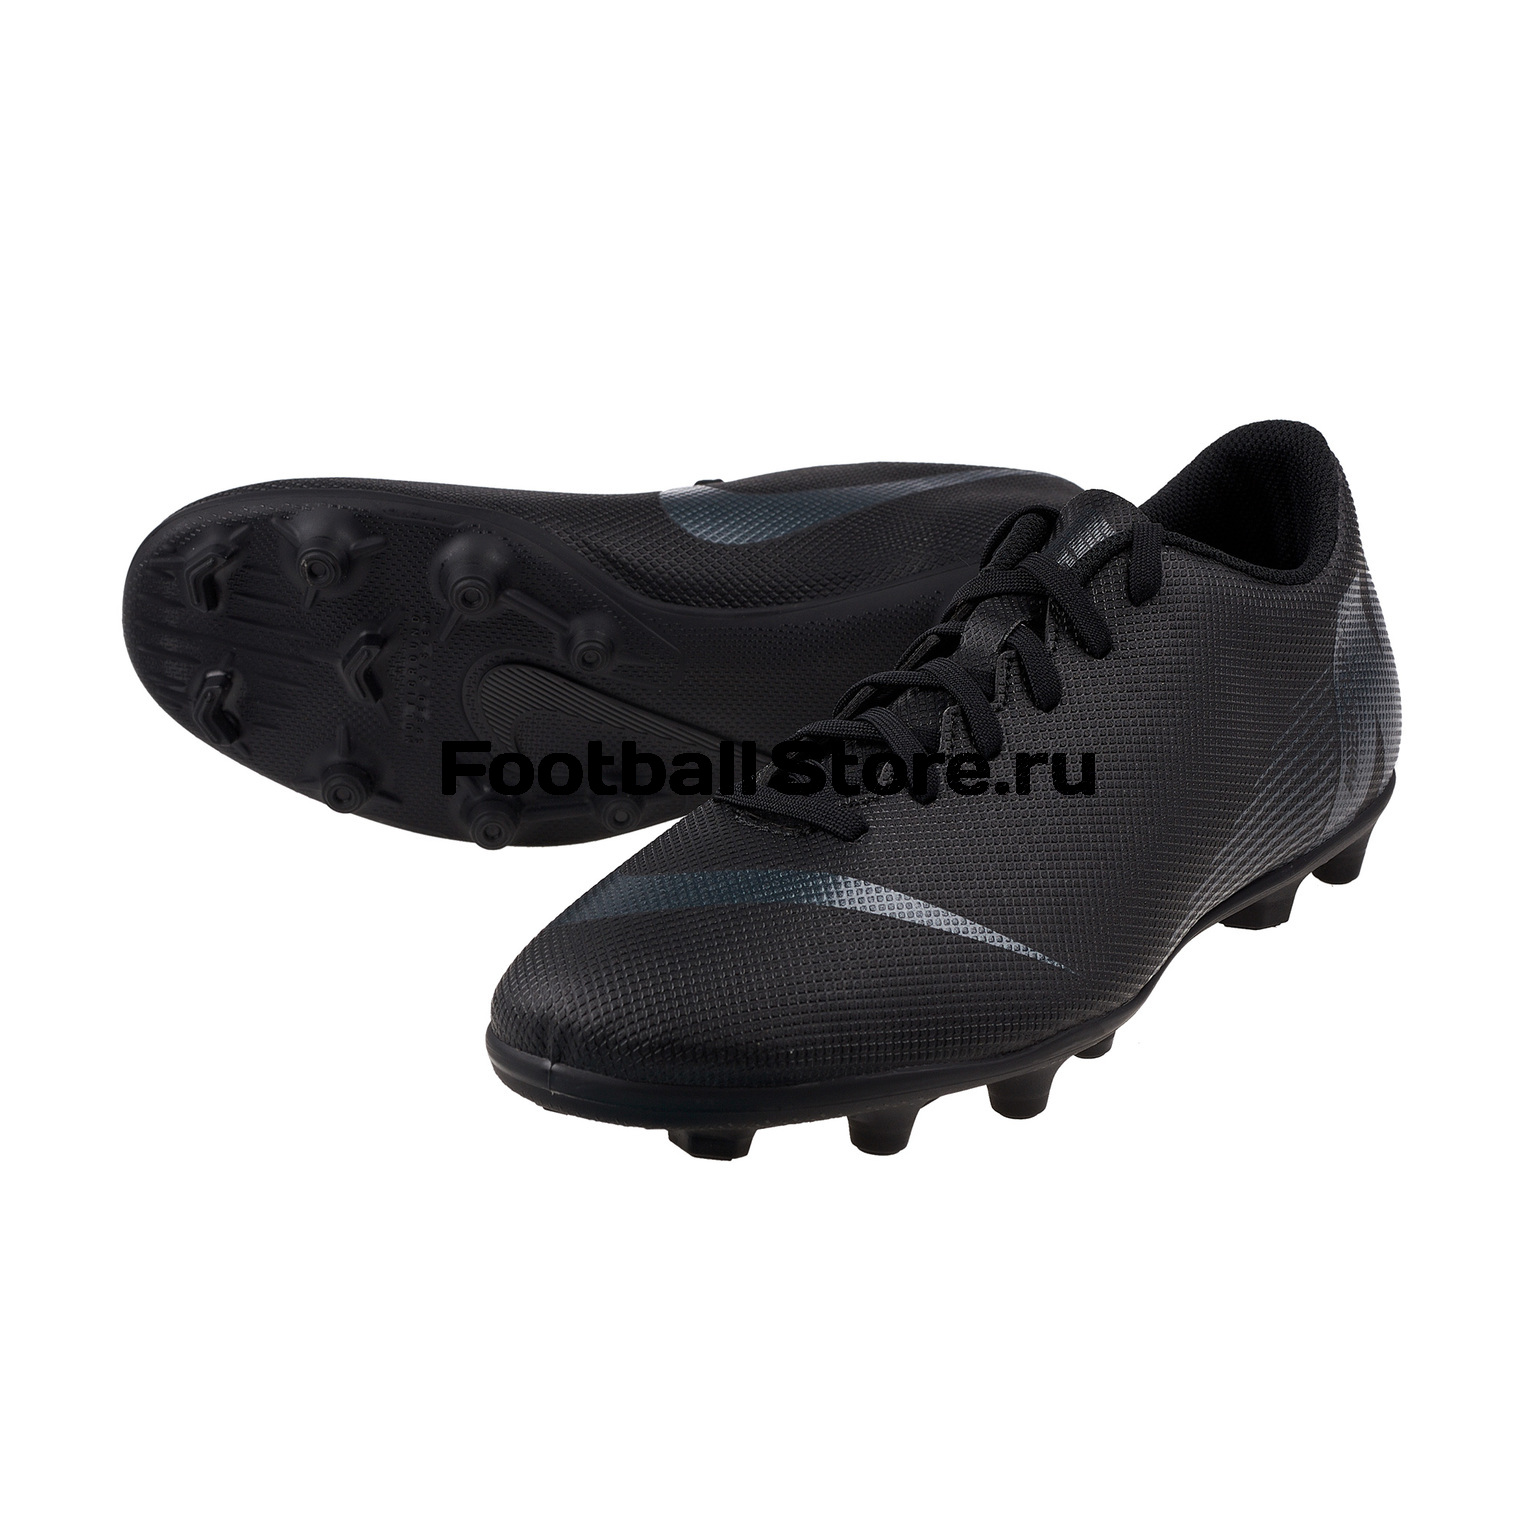 Бутсы Nike Vapor 12 Club FG/MG AH7378-001 бутсы nike superfly 6 club fg mg ah7363 001